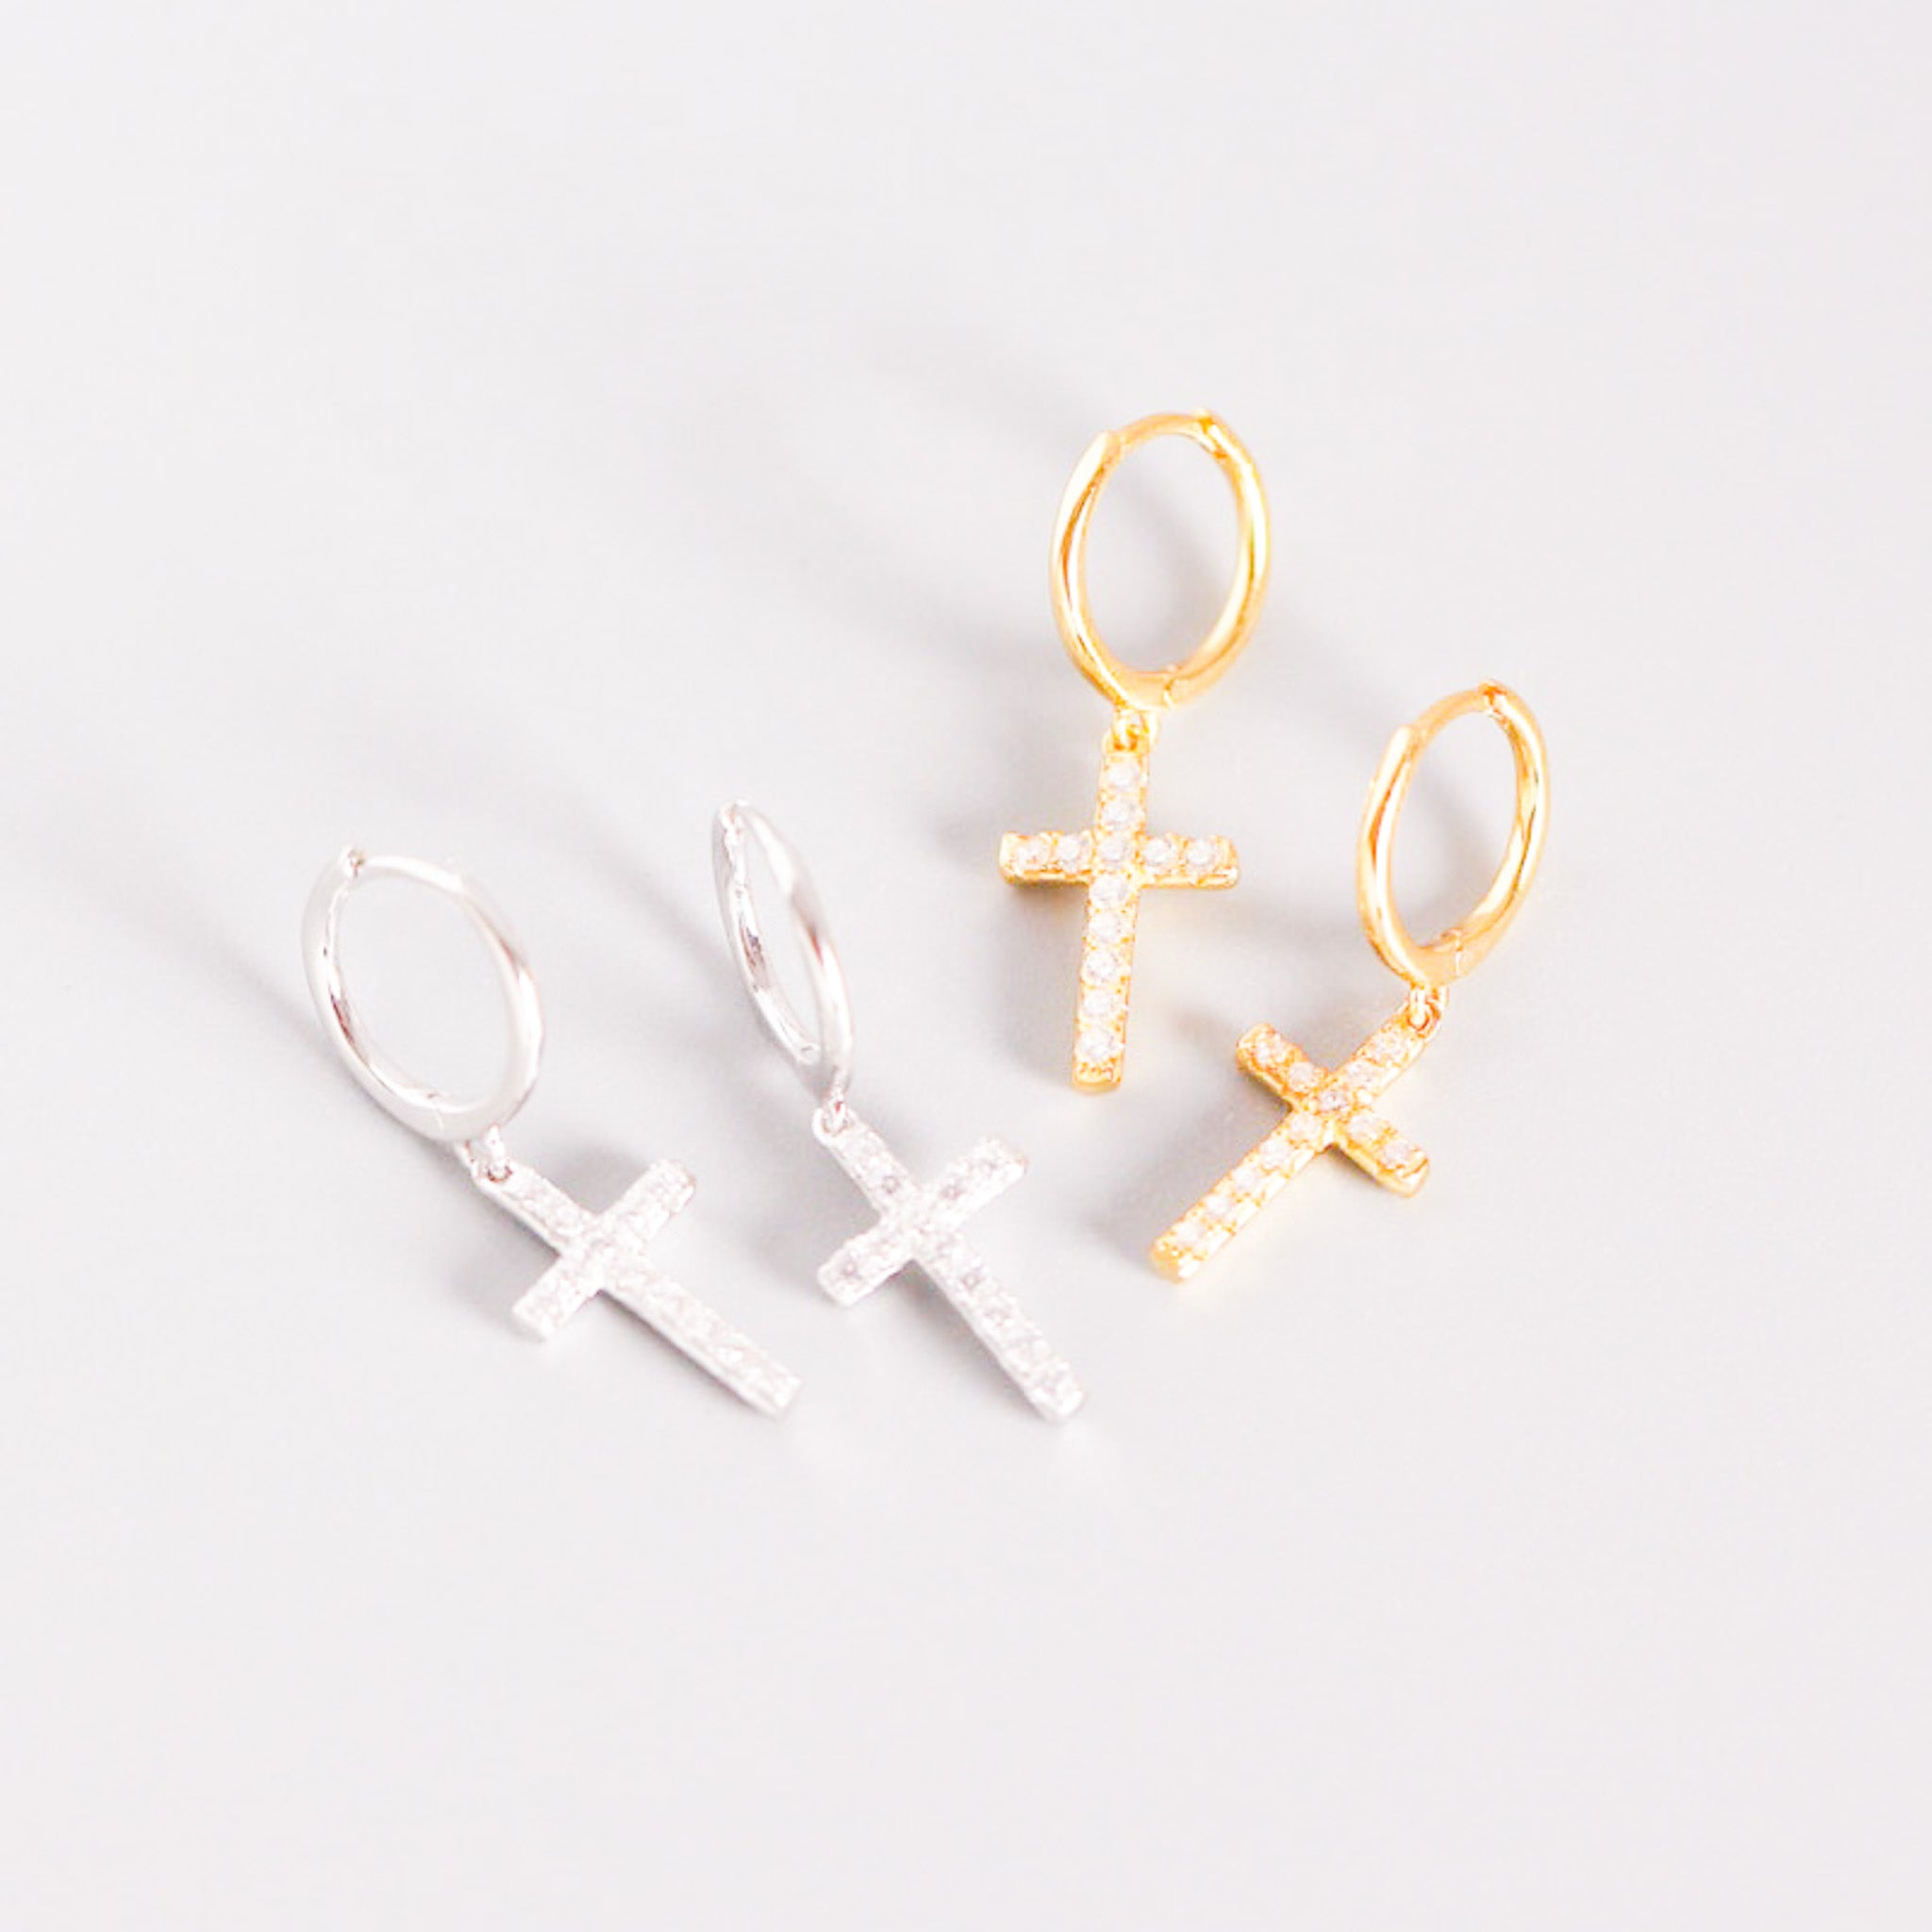 gold and silver earrings with crosses